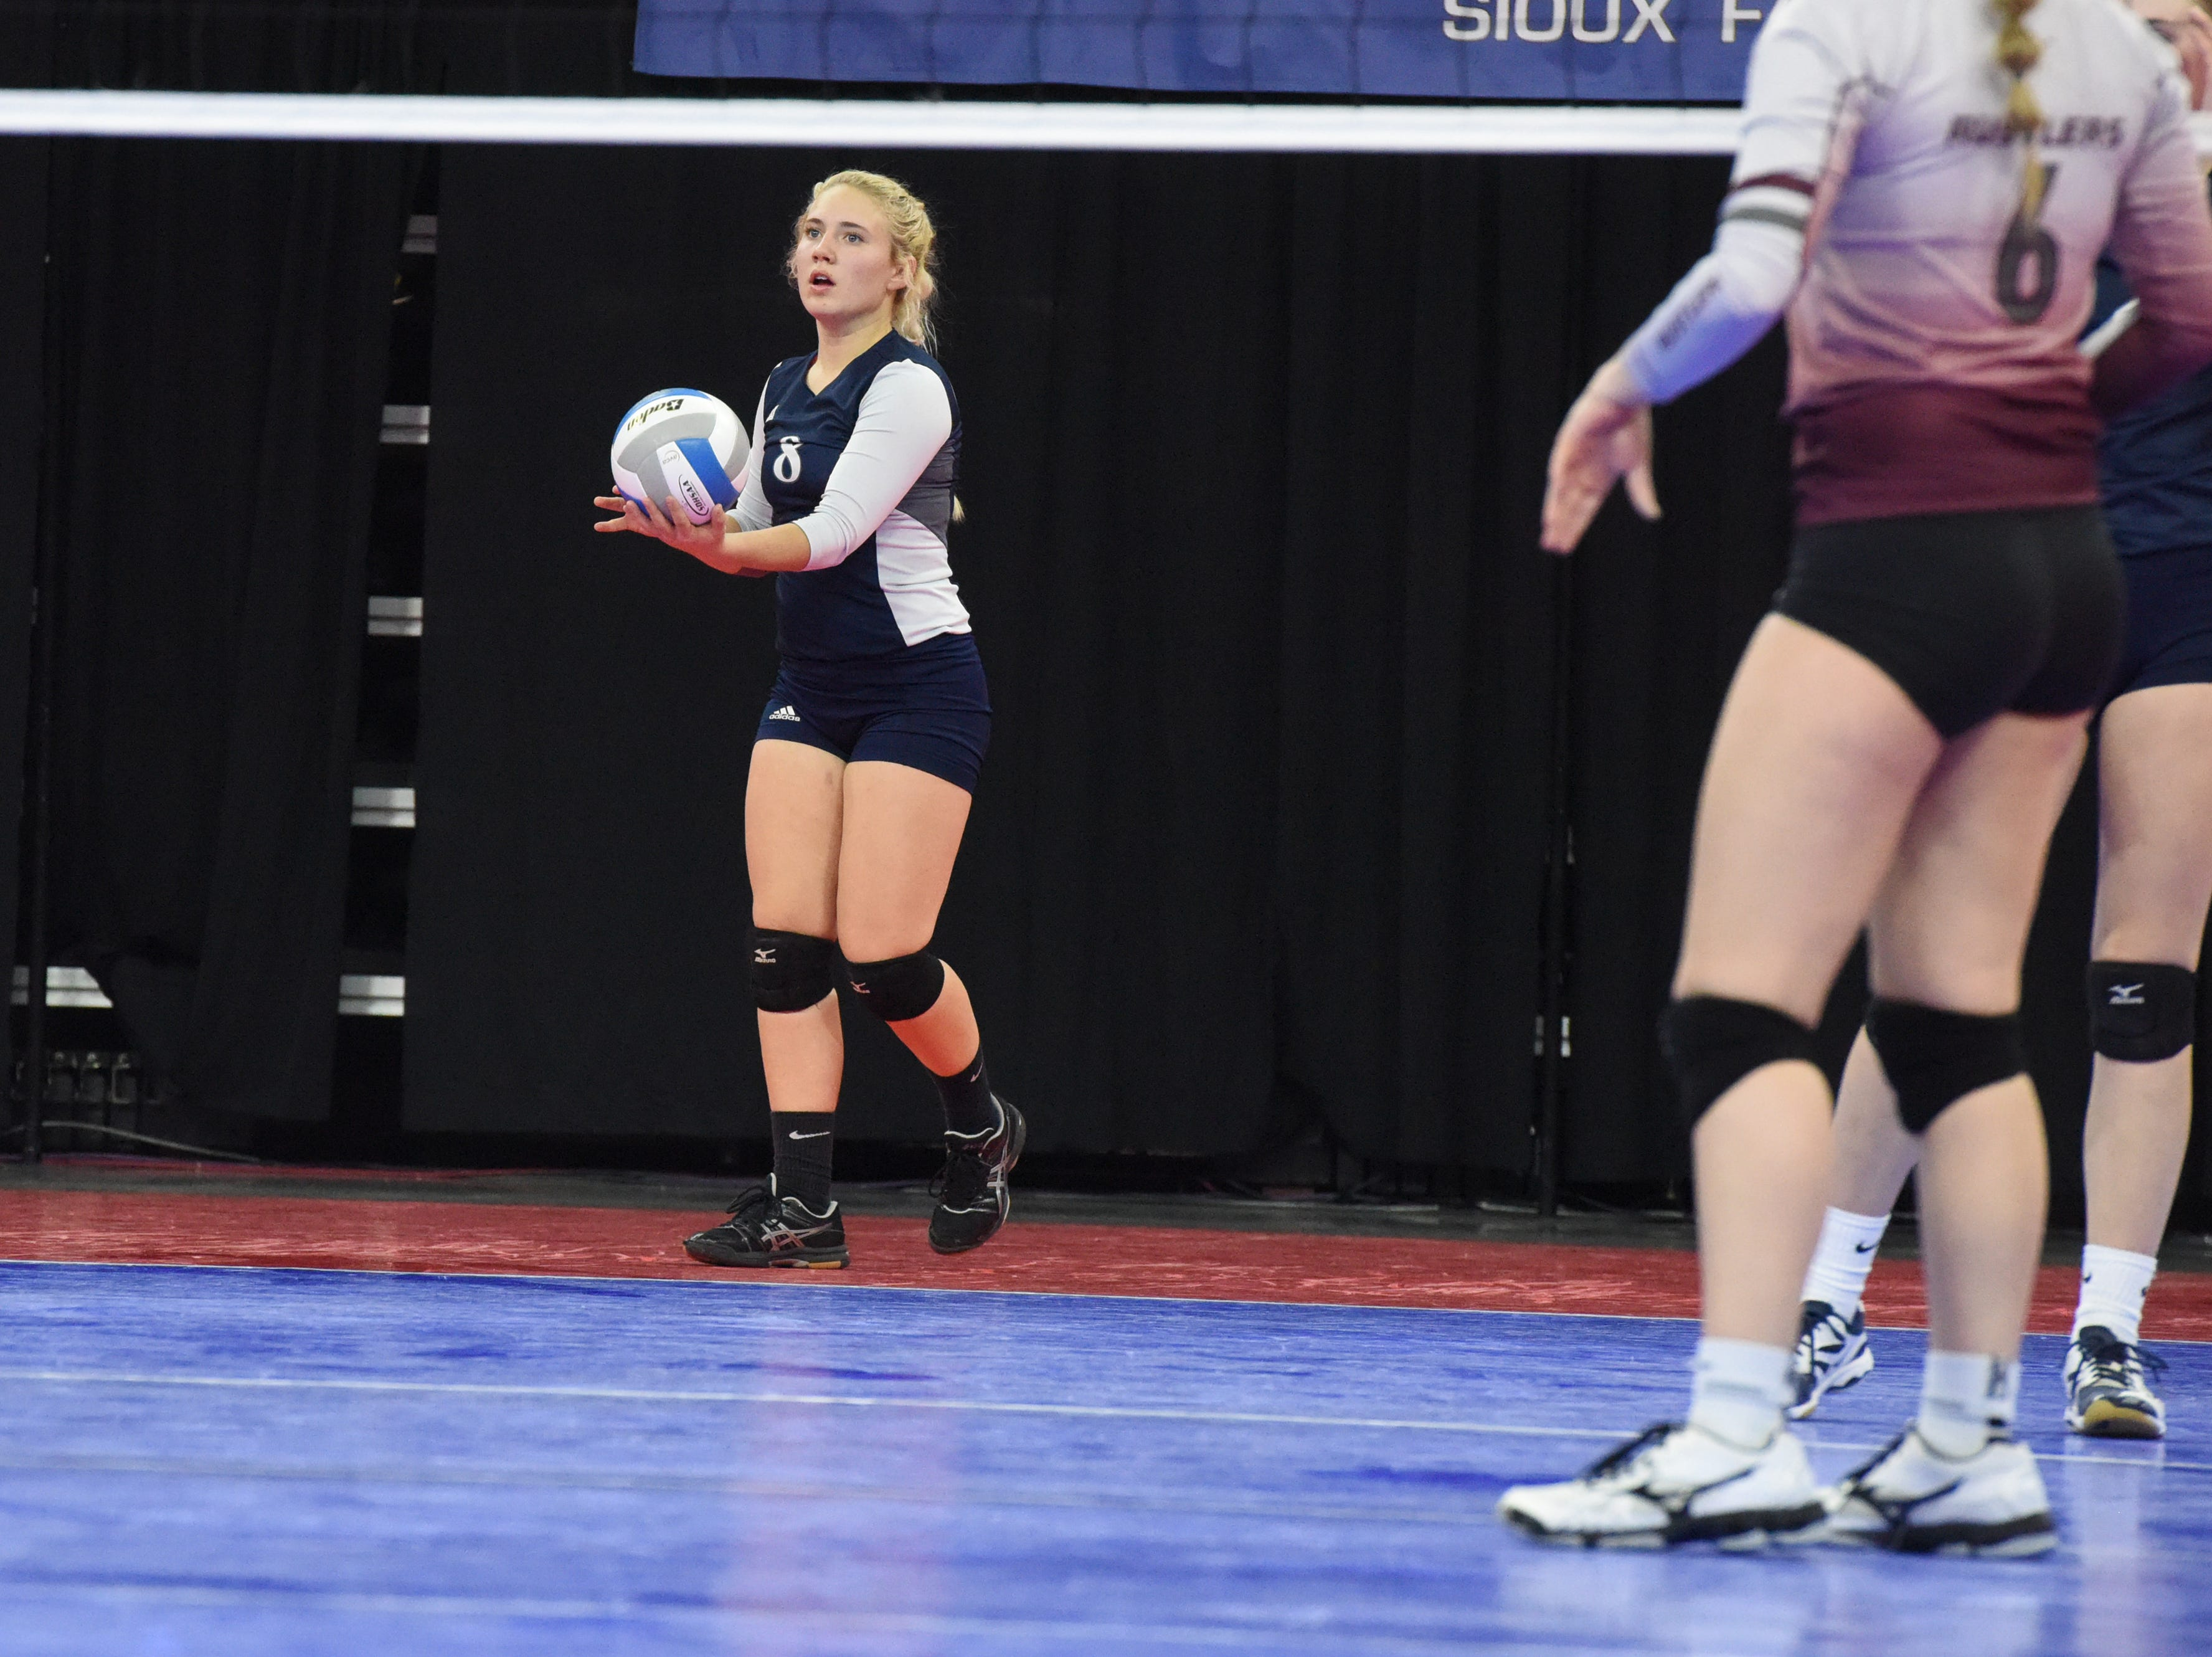 Burke's Ramee Hanson (8) prepares to serve the ball during a match against Ethan, Friday, Nov. 16, 2018, at the Denny Sanford Premier Center in Sioux Falls, S.D.